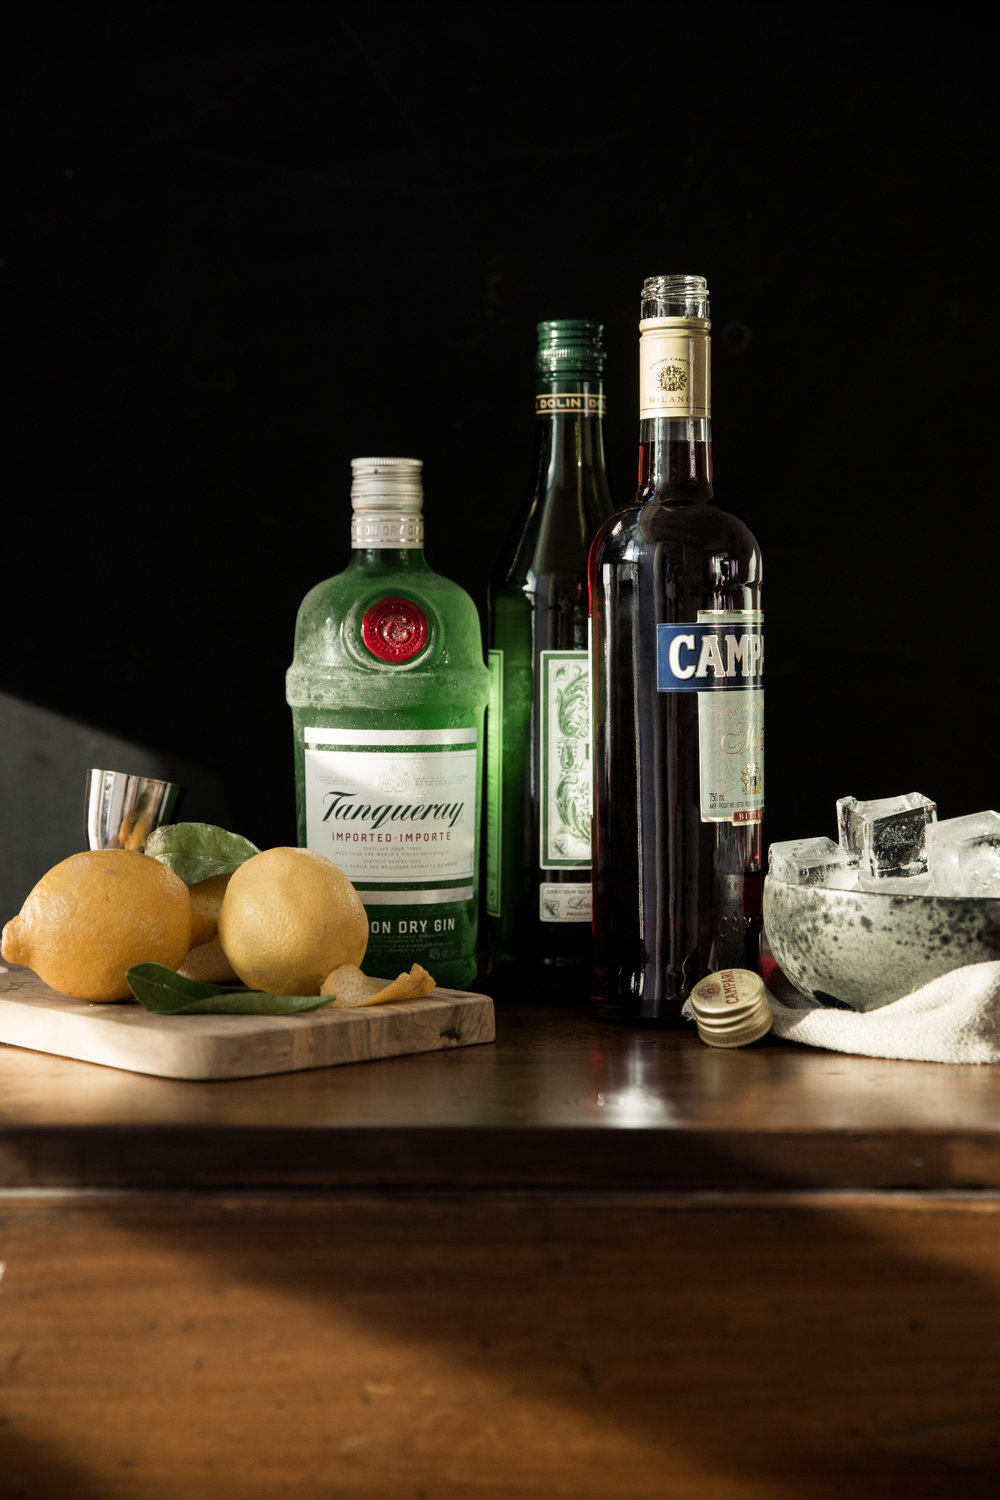 TOAST_HolidayCocktails_LaurenMiller_FoodPhotographer-.jpg